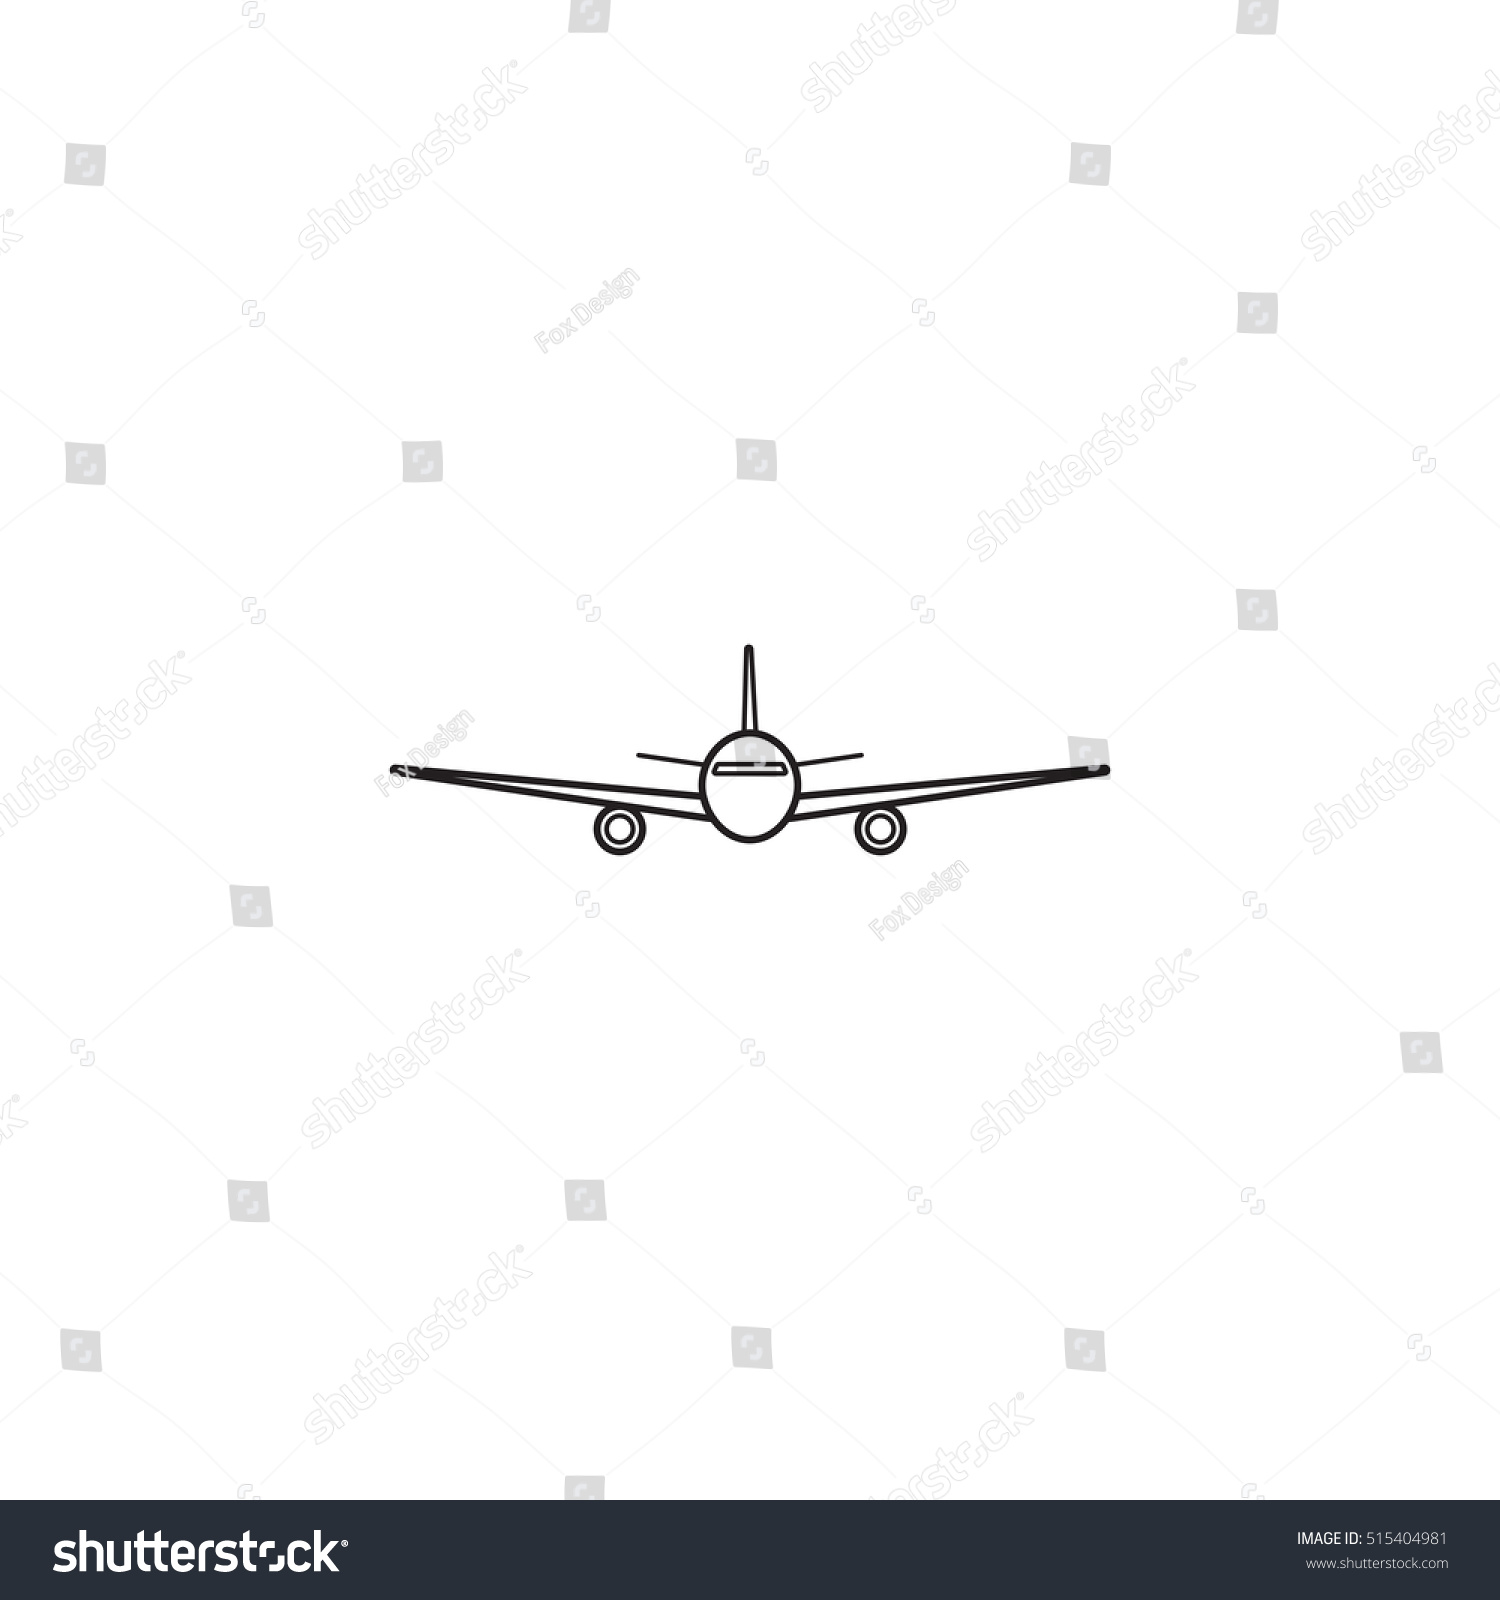 airplane icon transport aircraft symbol vector graphics a linear pattern on a white background eps 10